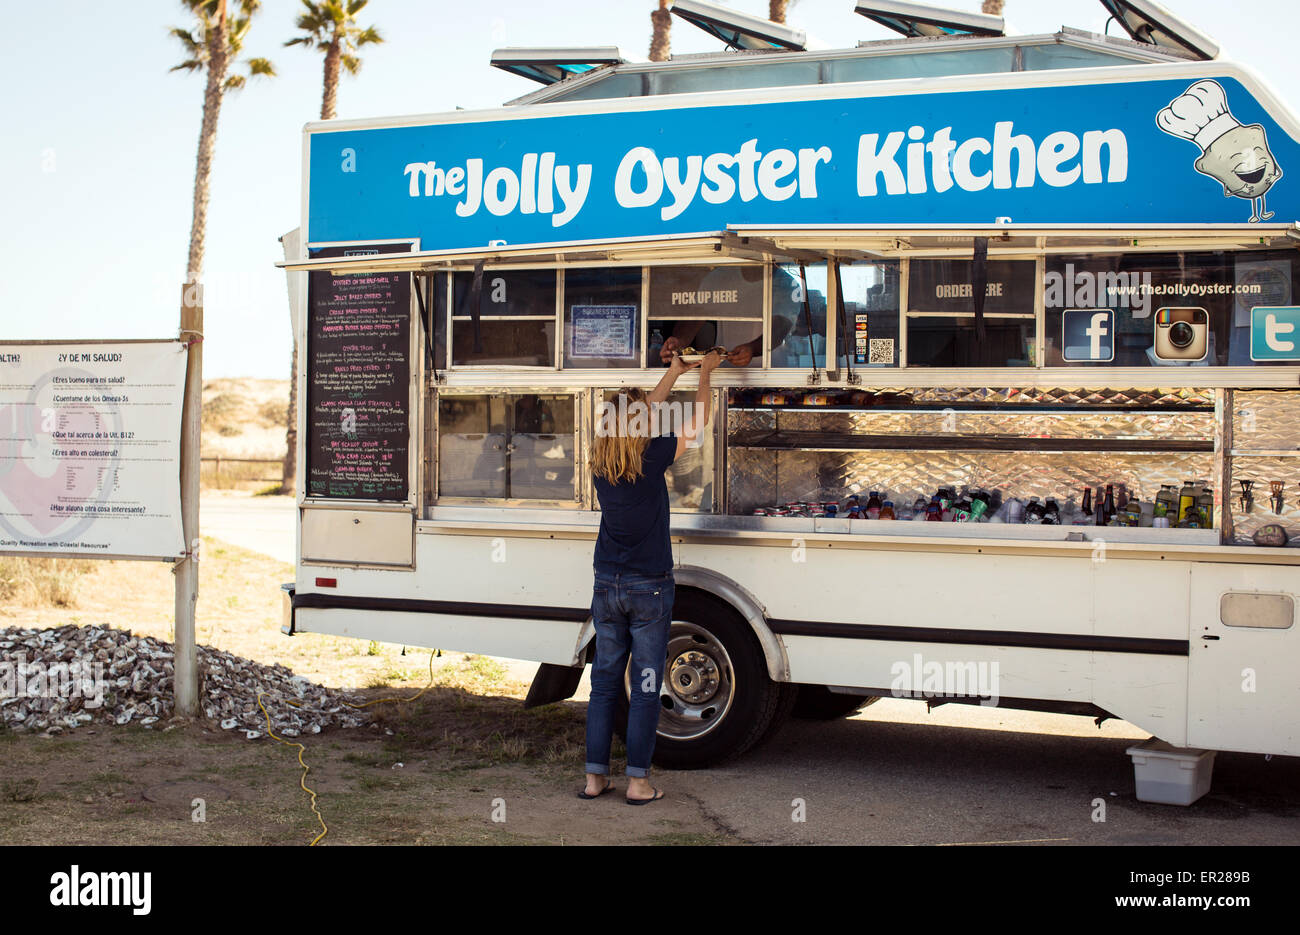 The Jolly Oyster food truck at the San Buenaventura State Beach in Ventura, California. - Stock Image